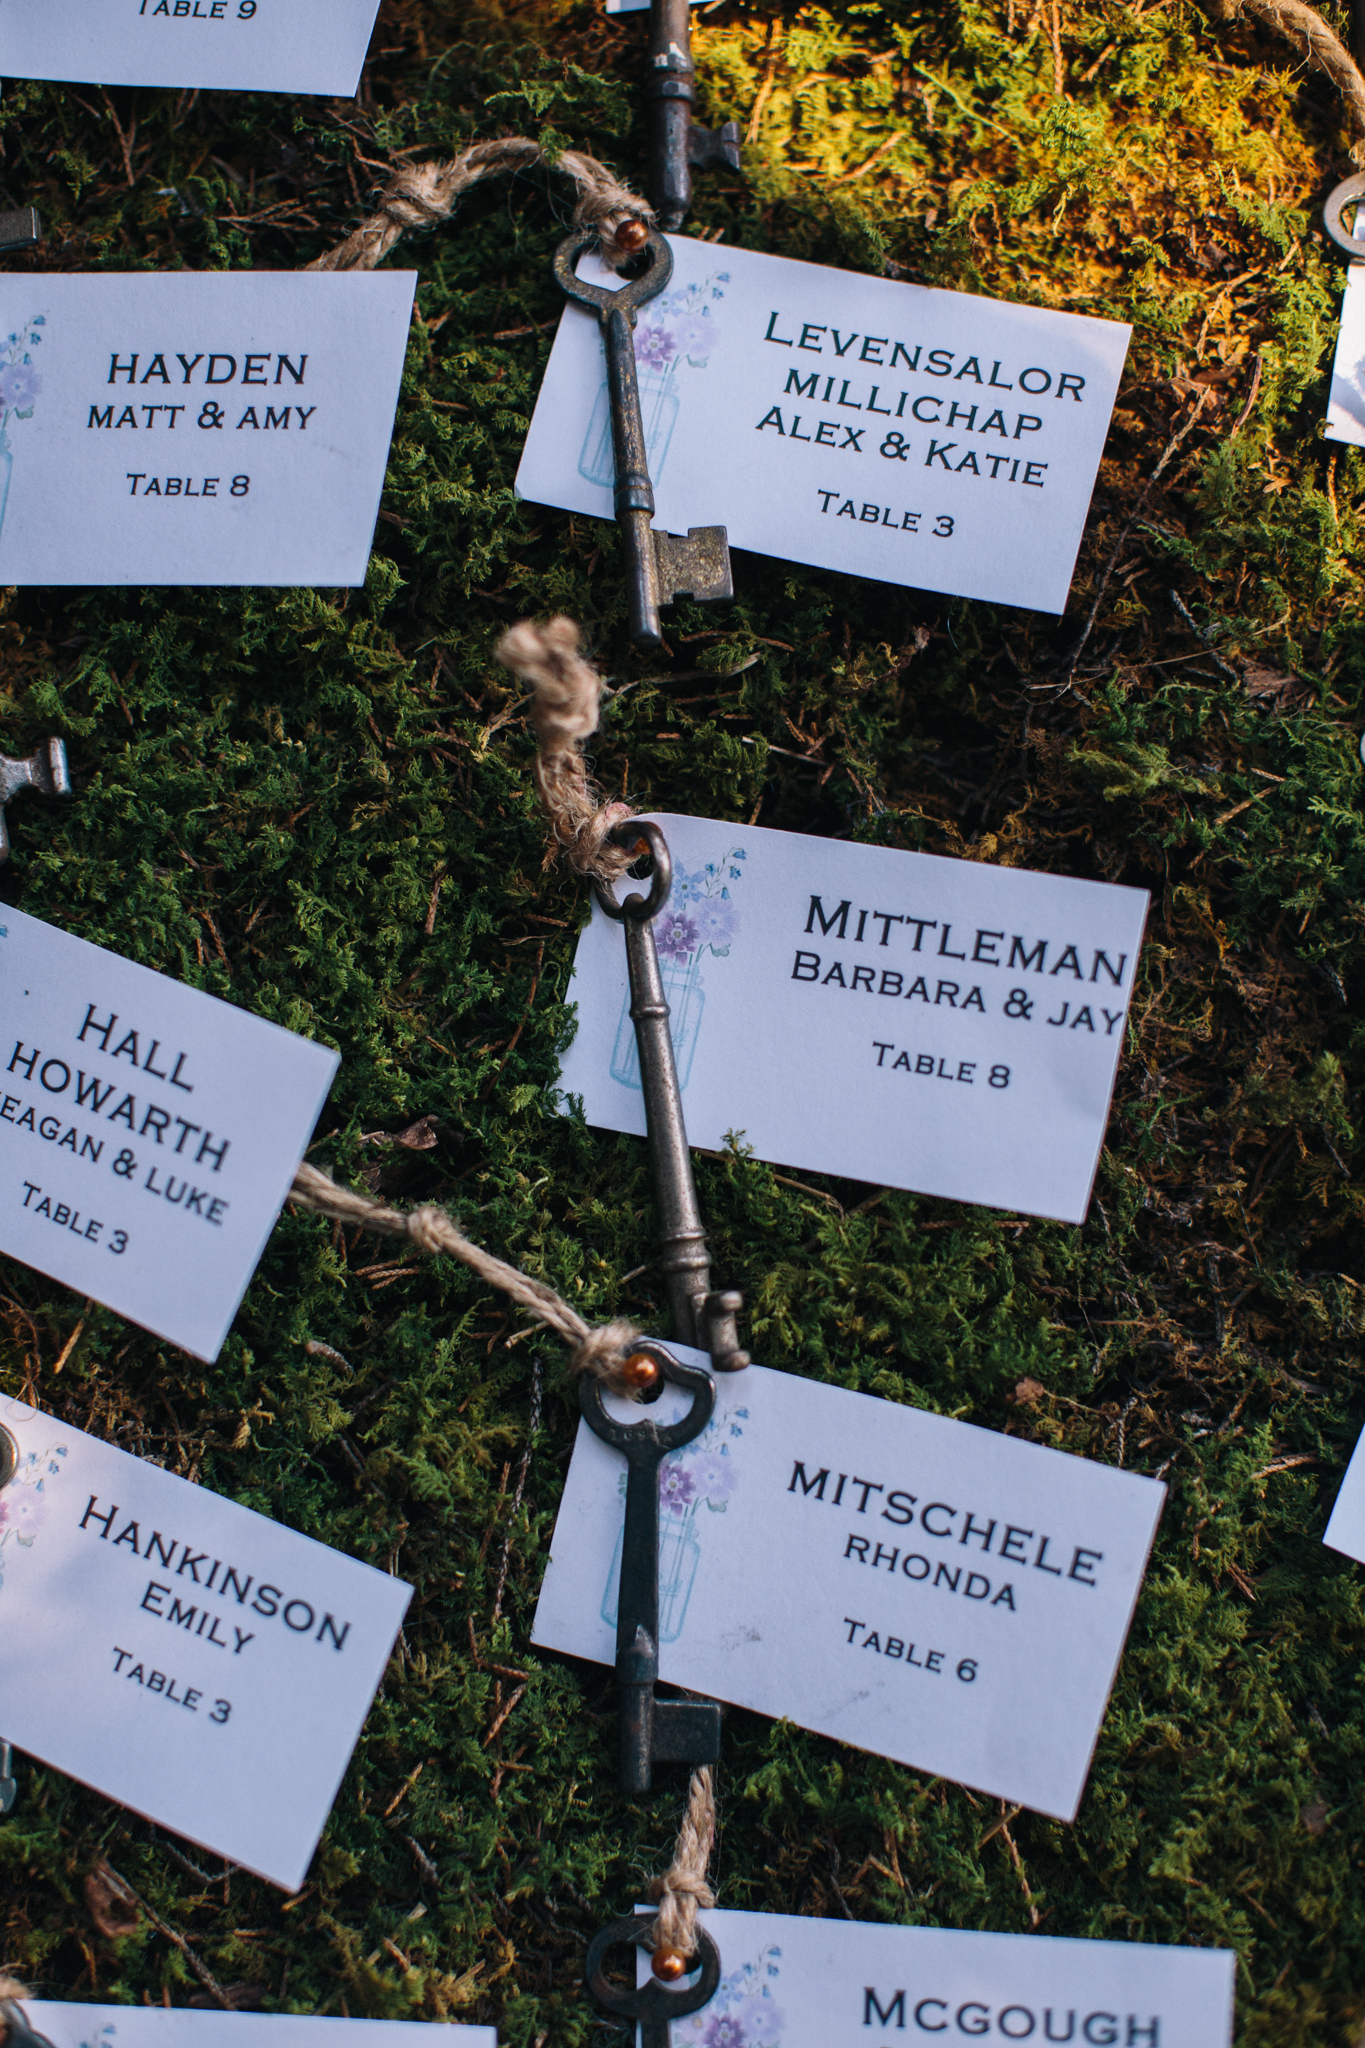 Wedding Escort Cards - keeping with our vintage and rustic theme - antique skeleton keys were used as our escort cards that matched well with our DIY table numbers. The keys and cards were added to a large, moss covered frame.